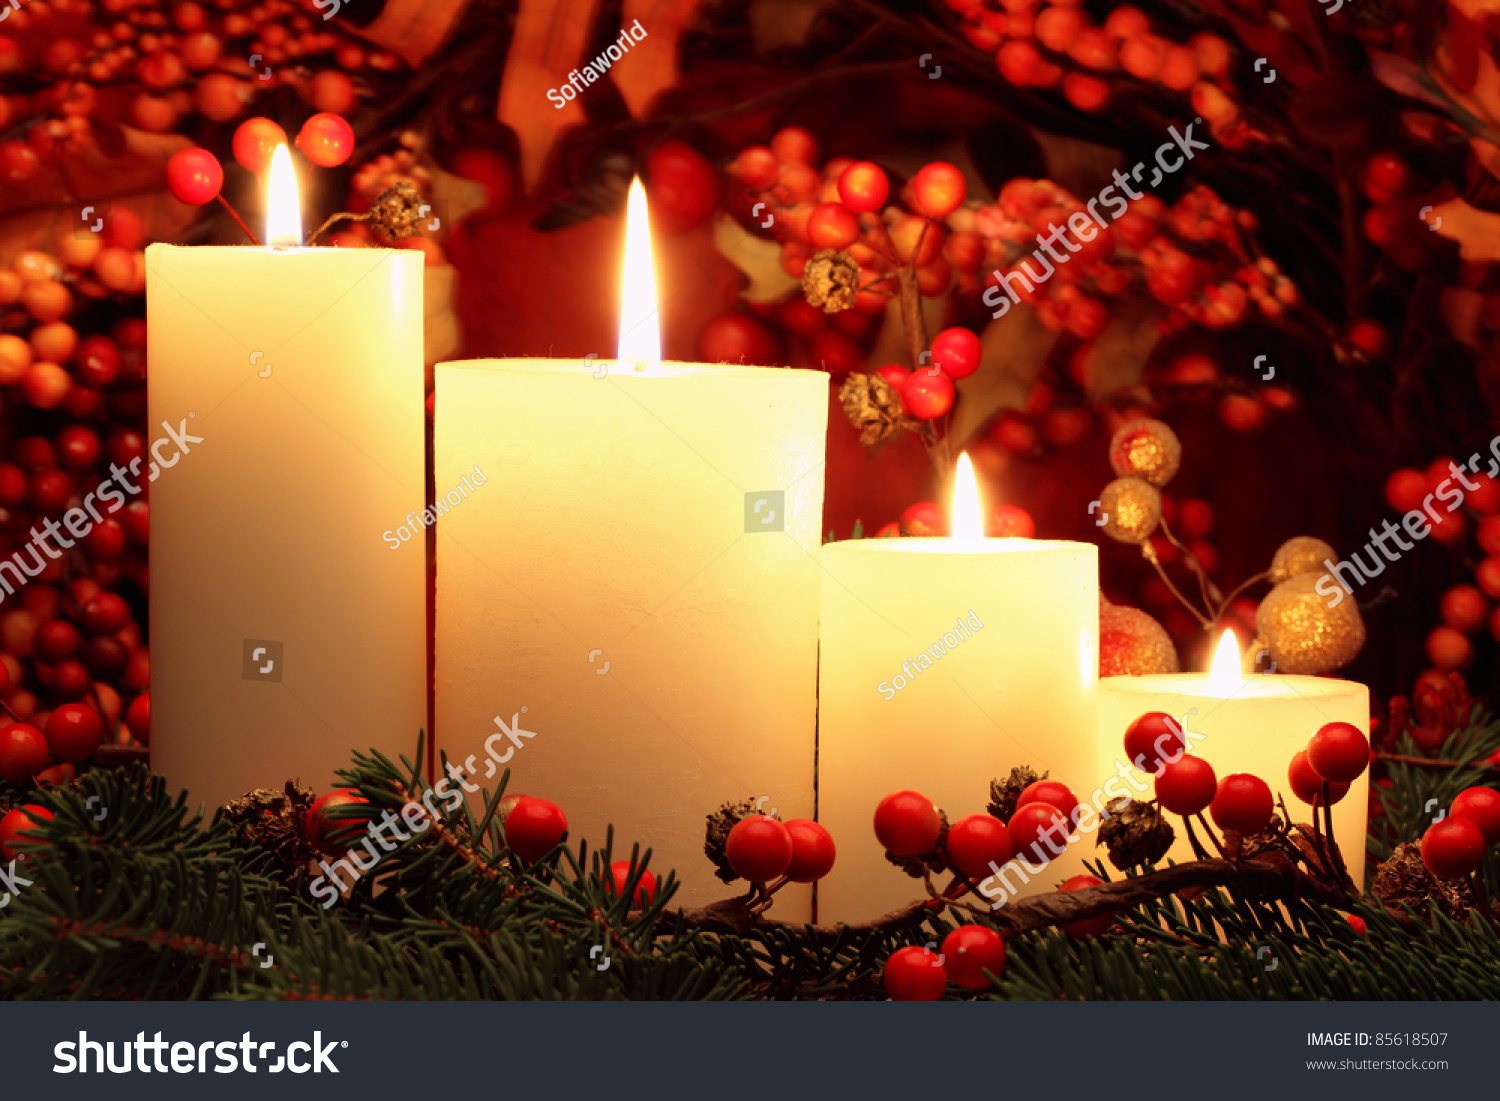 Christmas Candles Stock Photo 85618507 : Shutterstock